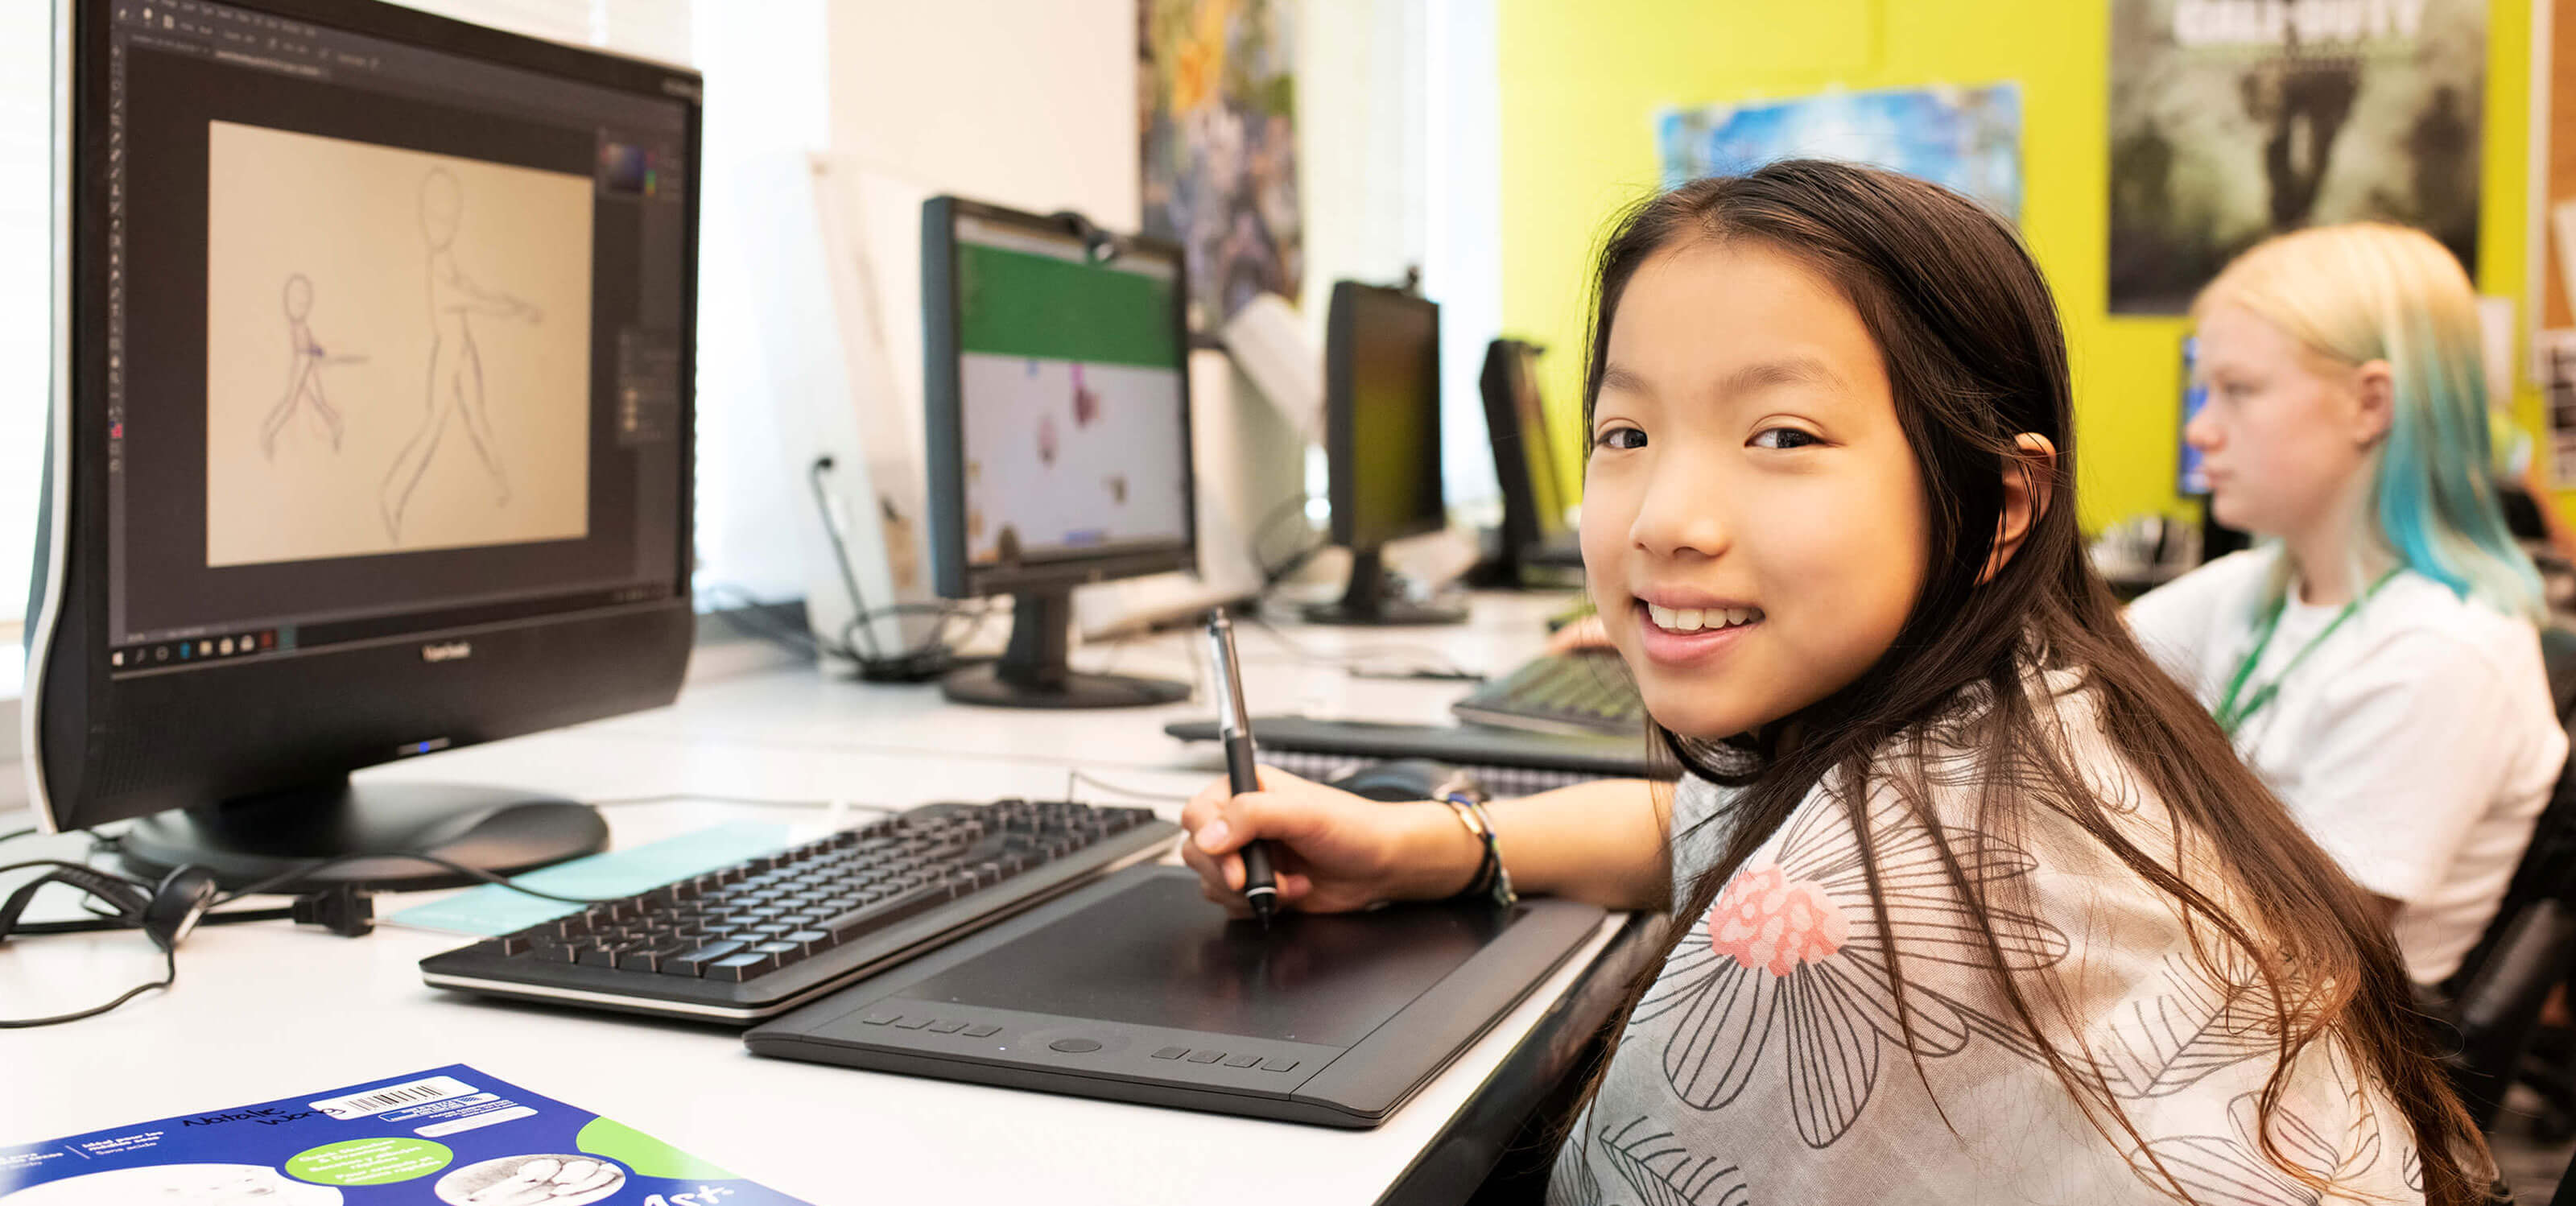 A young DigiPen Academy student smiling as she sits at a computer in a classroom at the DigiPen campus